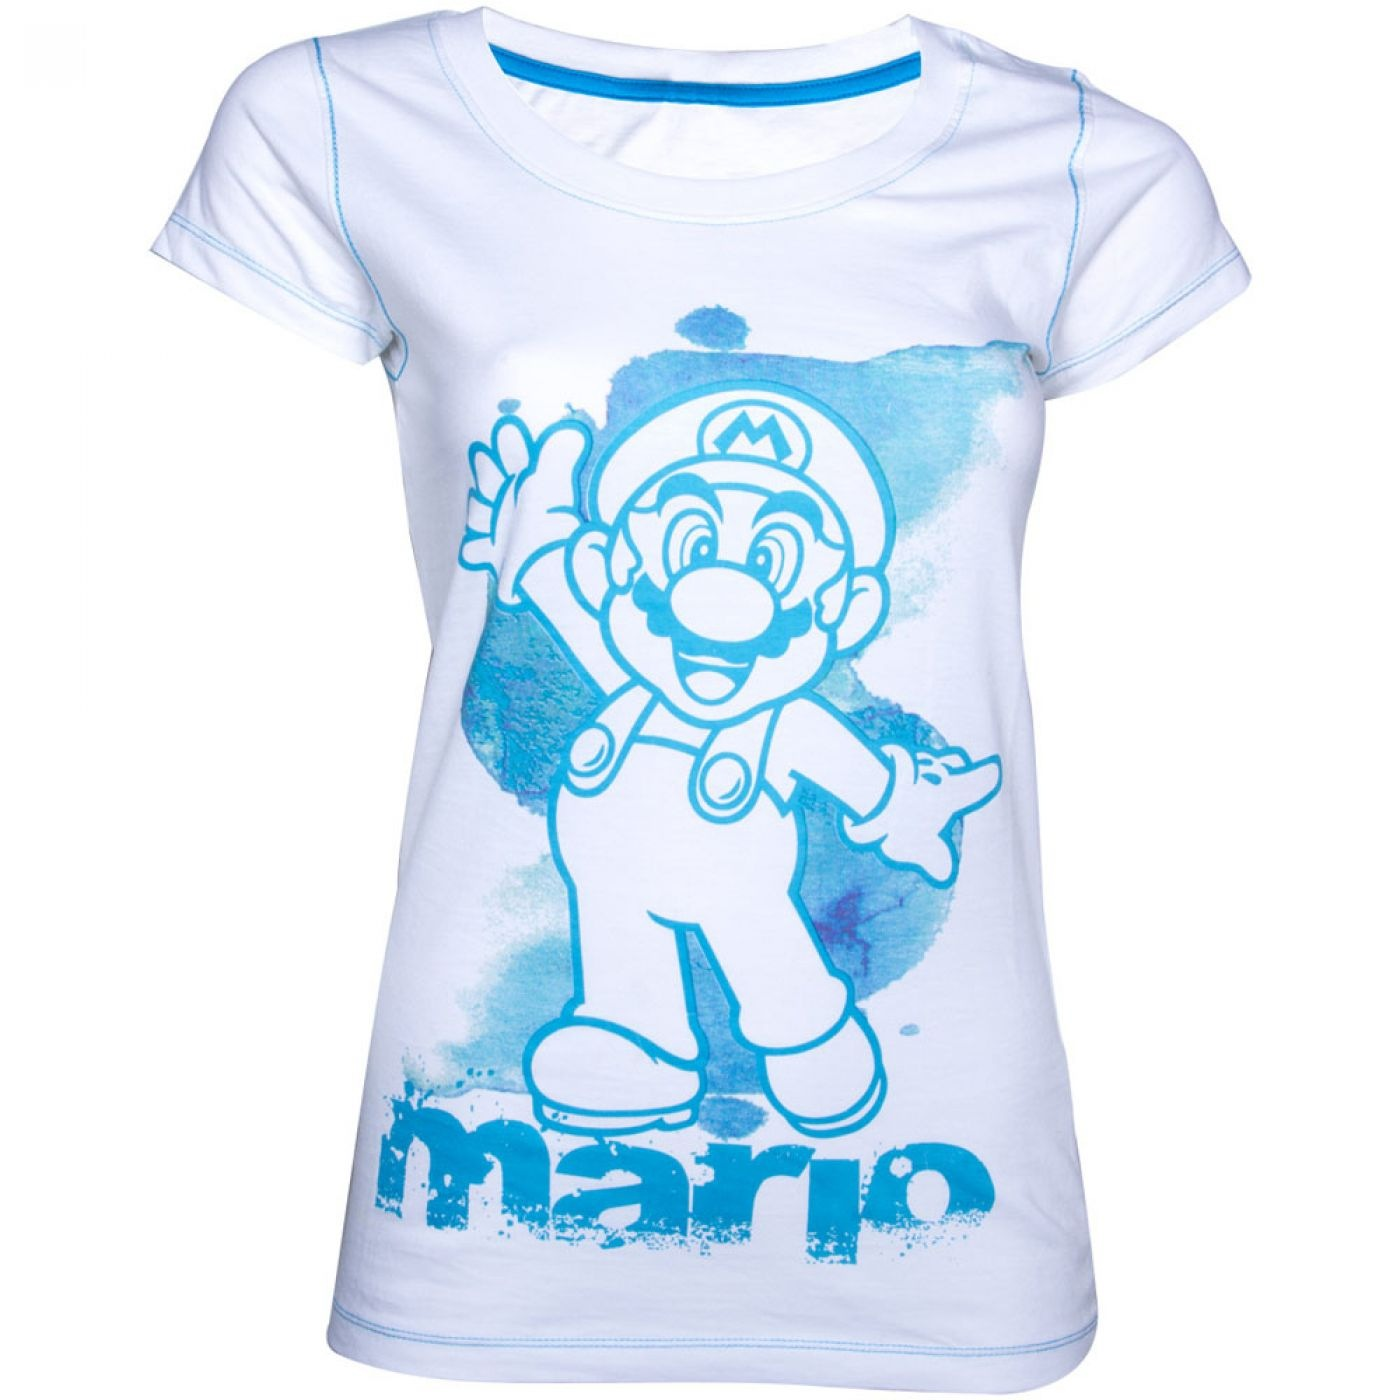 Nintendo Super Mario Bros women's t-shirt - Mario ladies tshirt